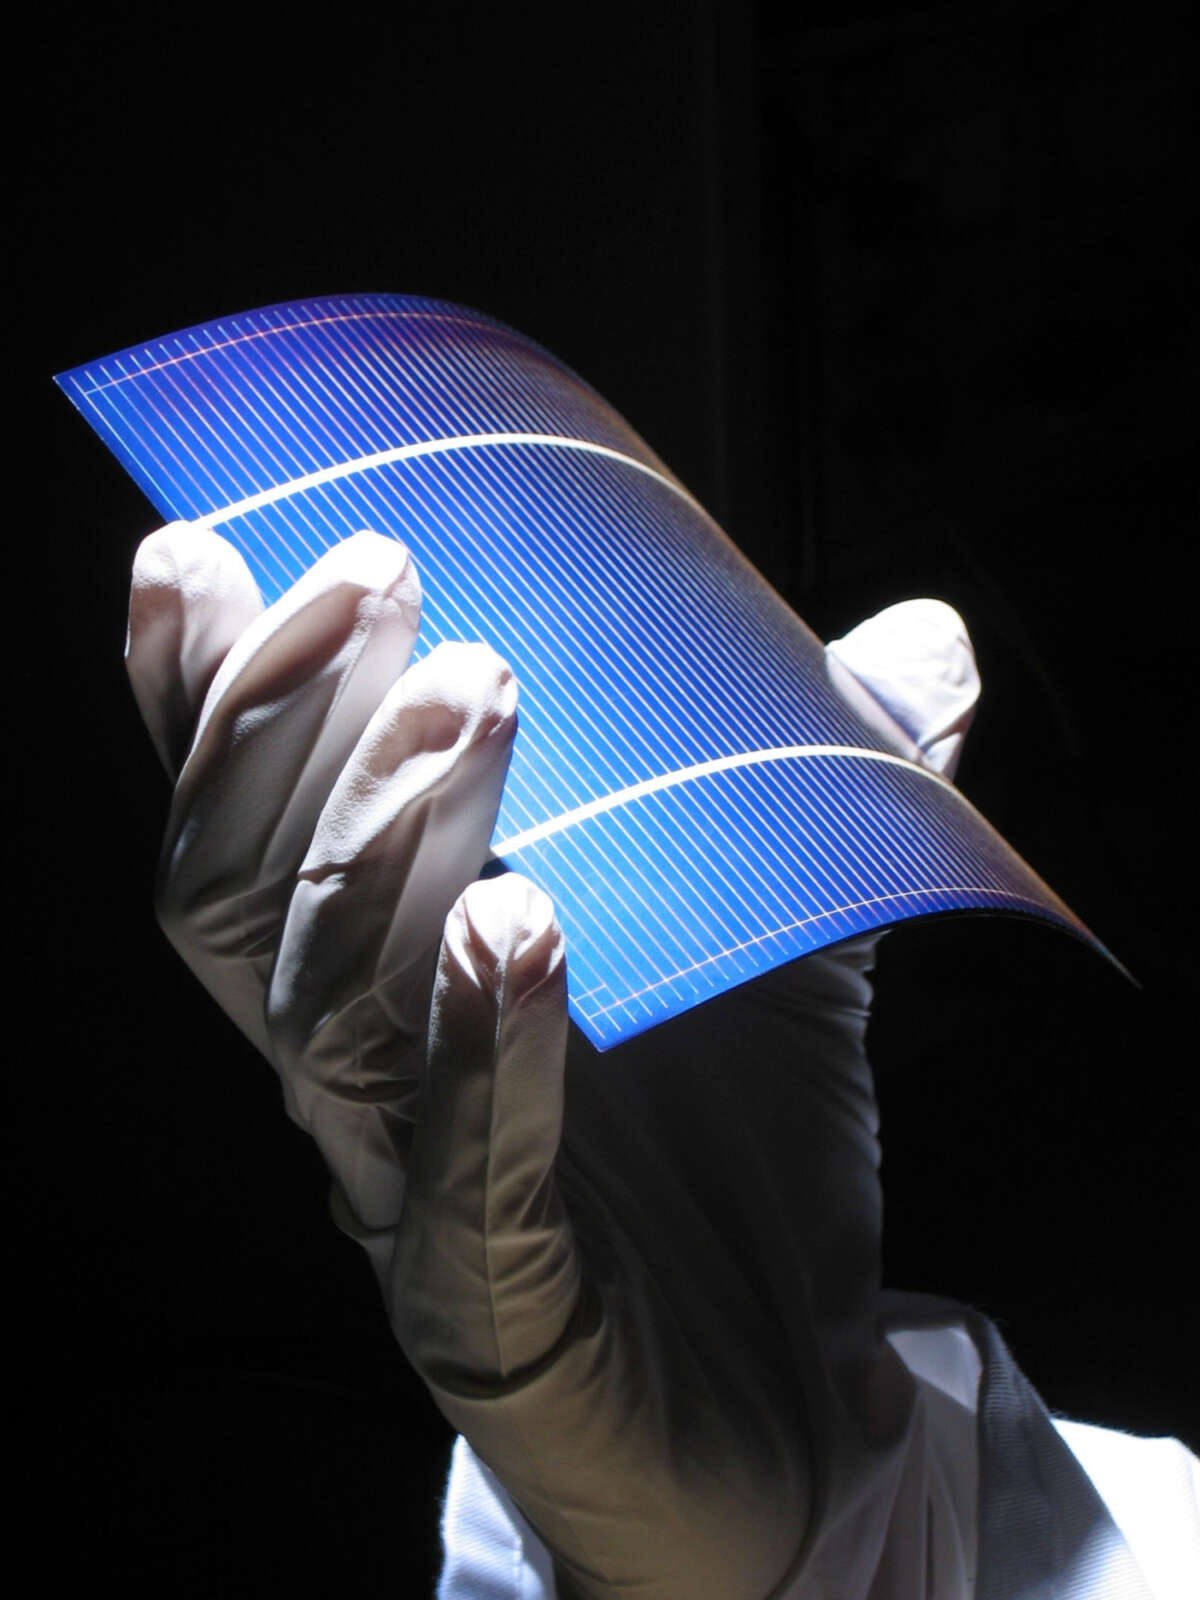 Thin film photovoltaic solar energy 3 Holst Solliance